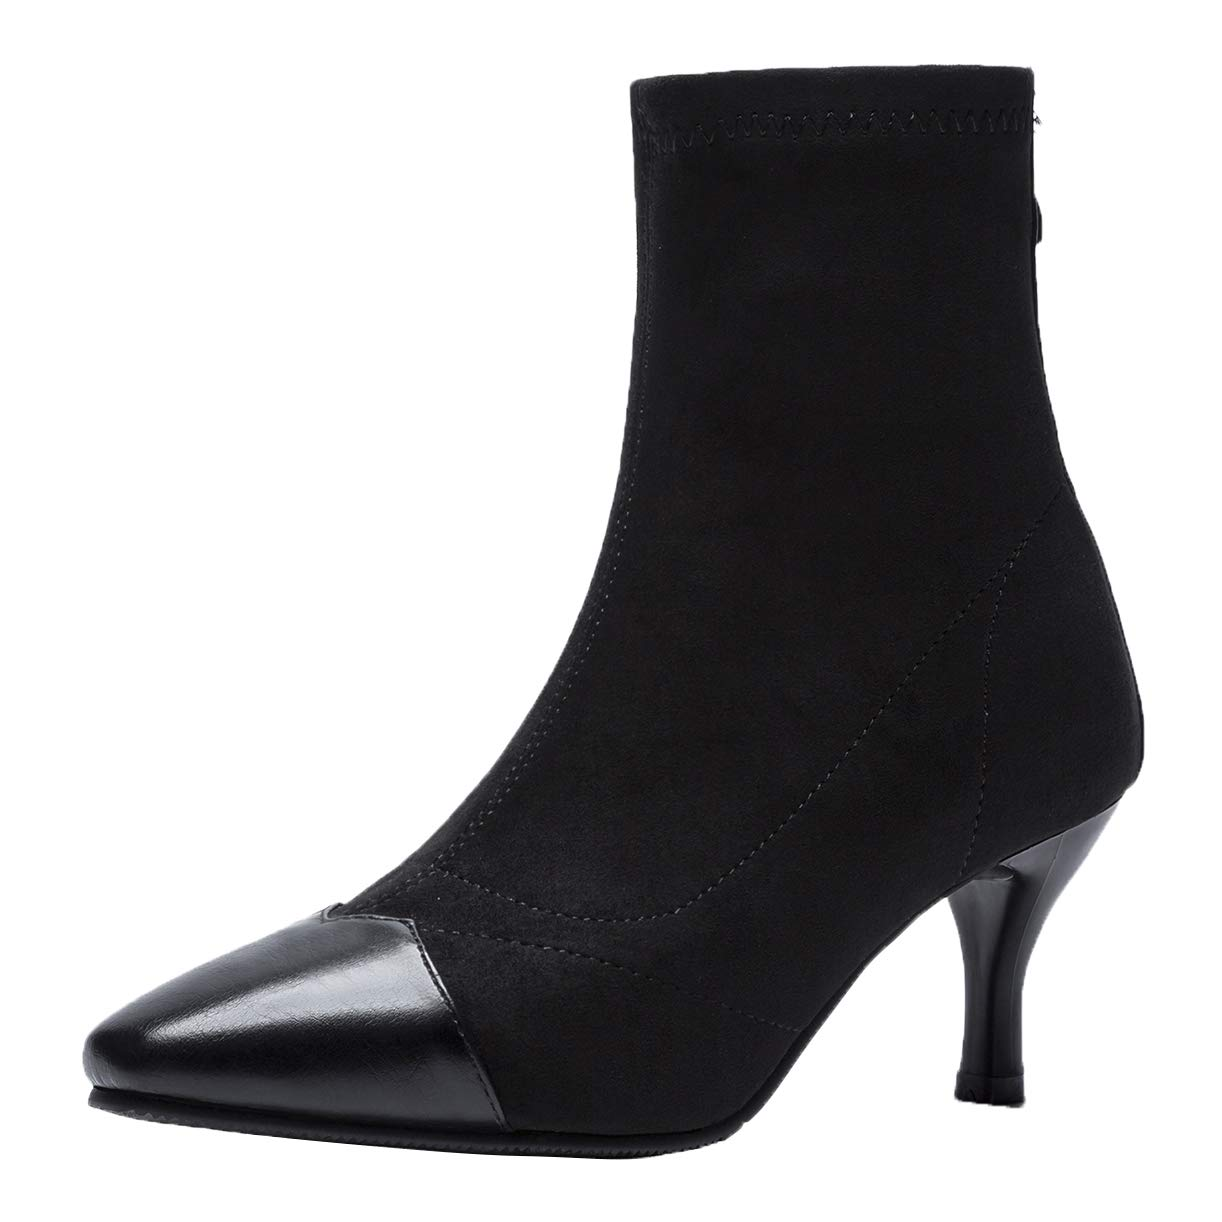 JYshoes , B018S74G7Y Montantes JYshoes Femme Femme Noir 796e226 - therethere.space